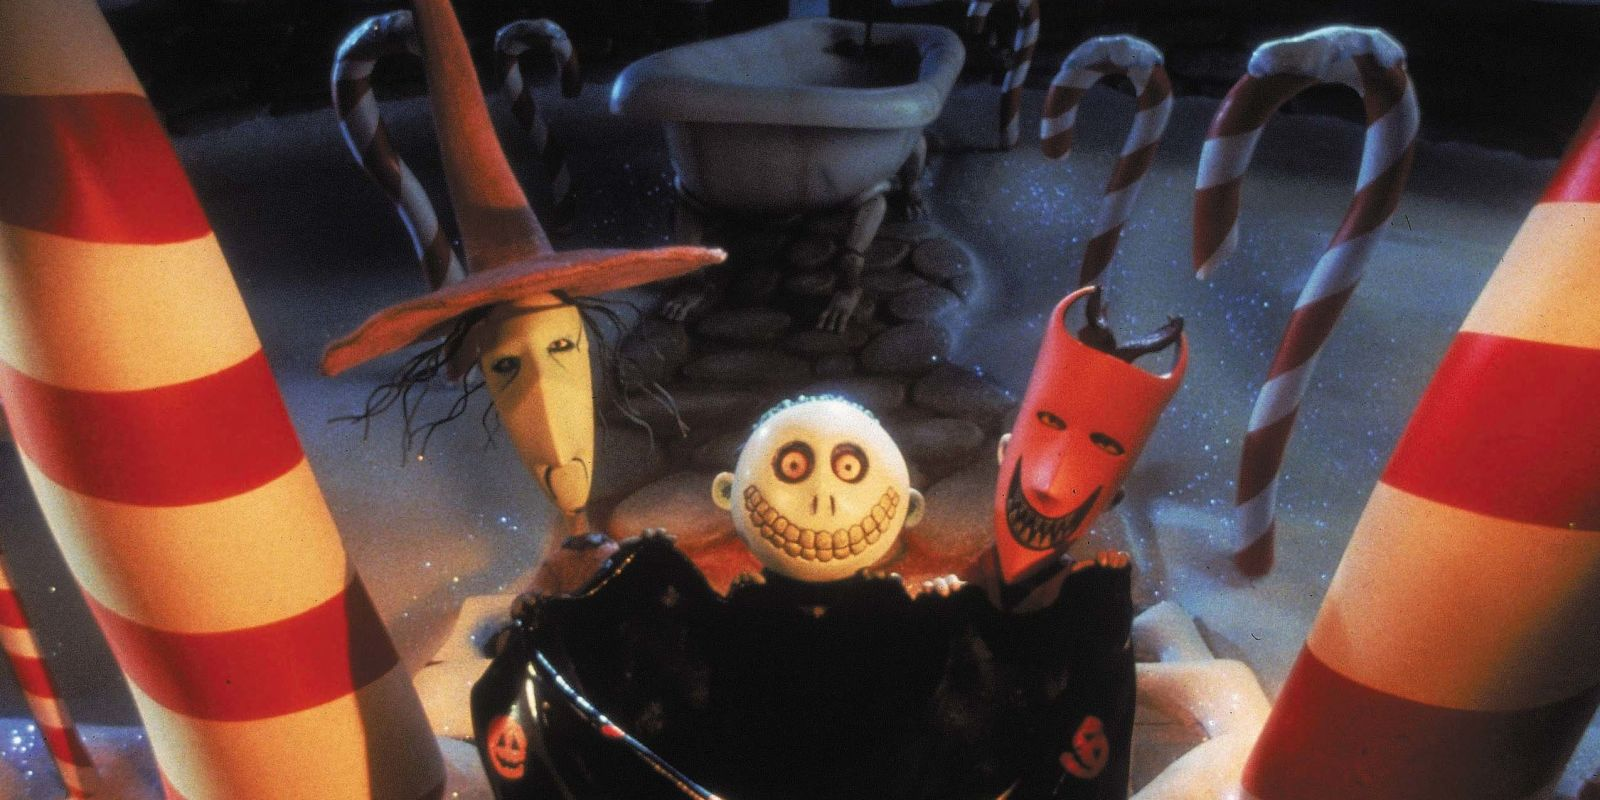 The Nightmare Before Christmas will get a sequel next year